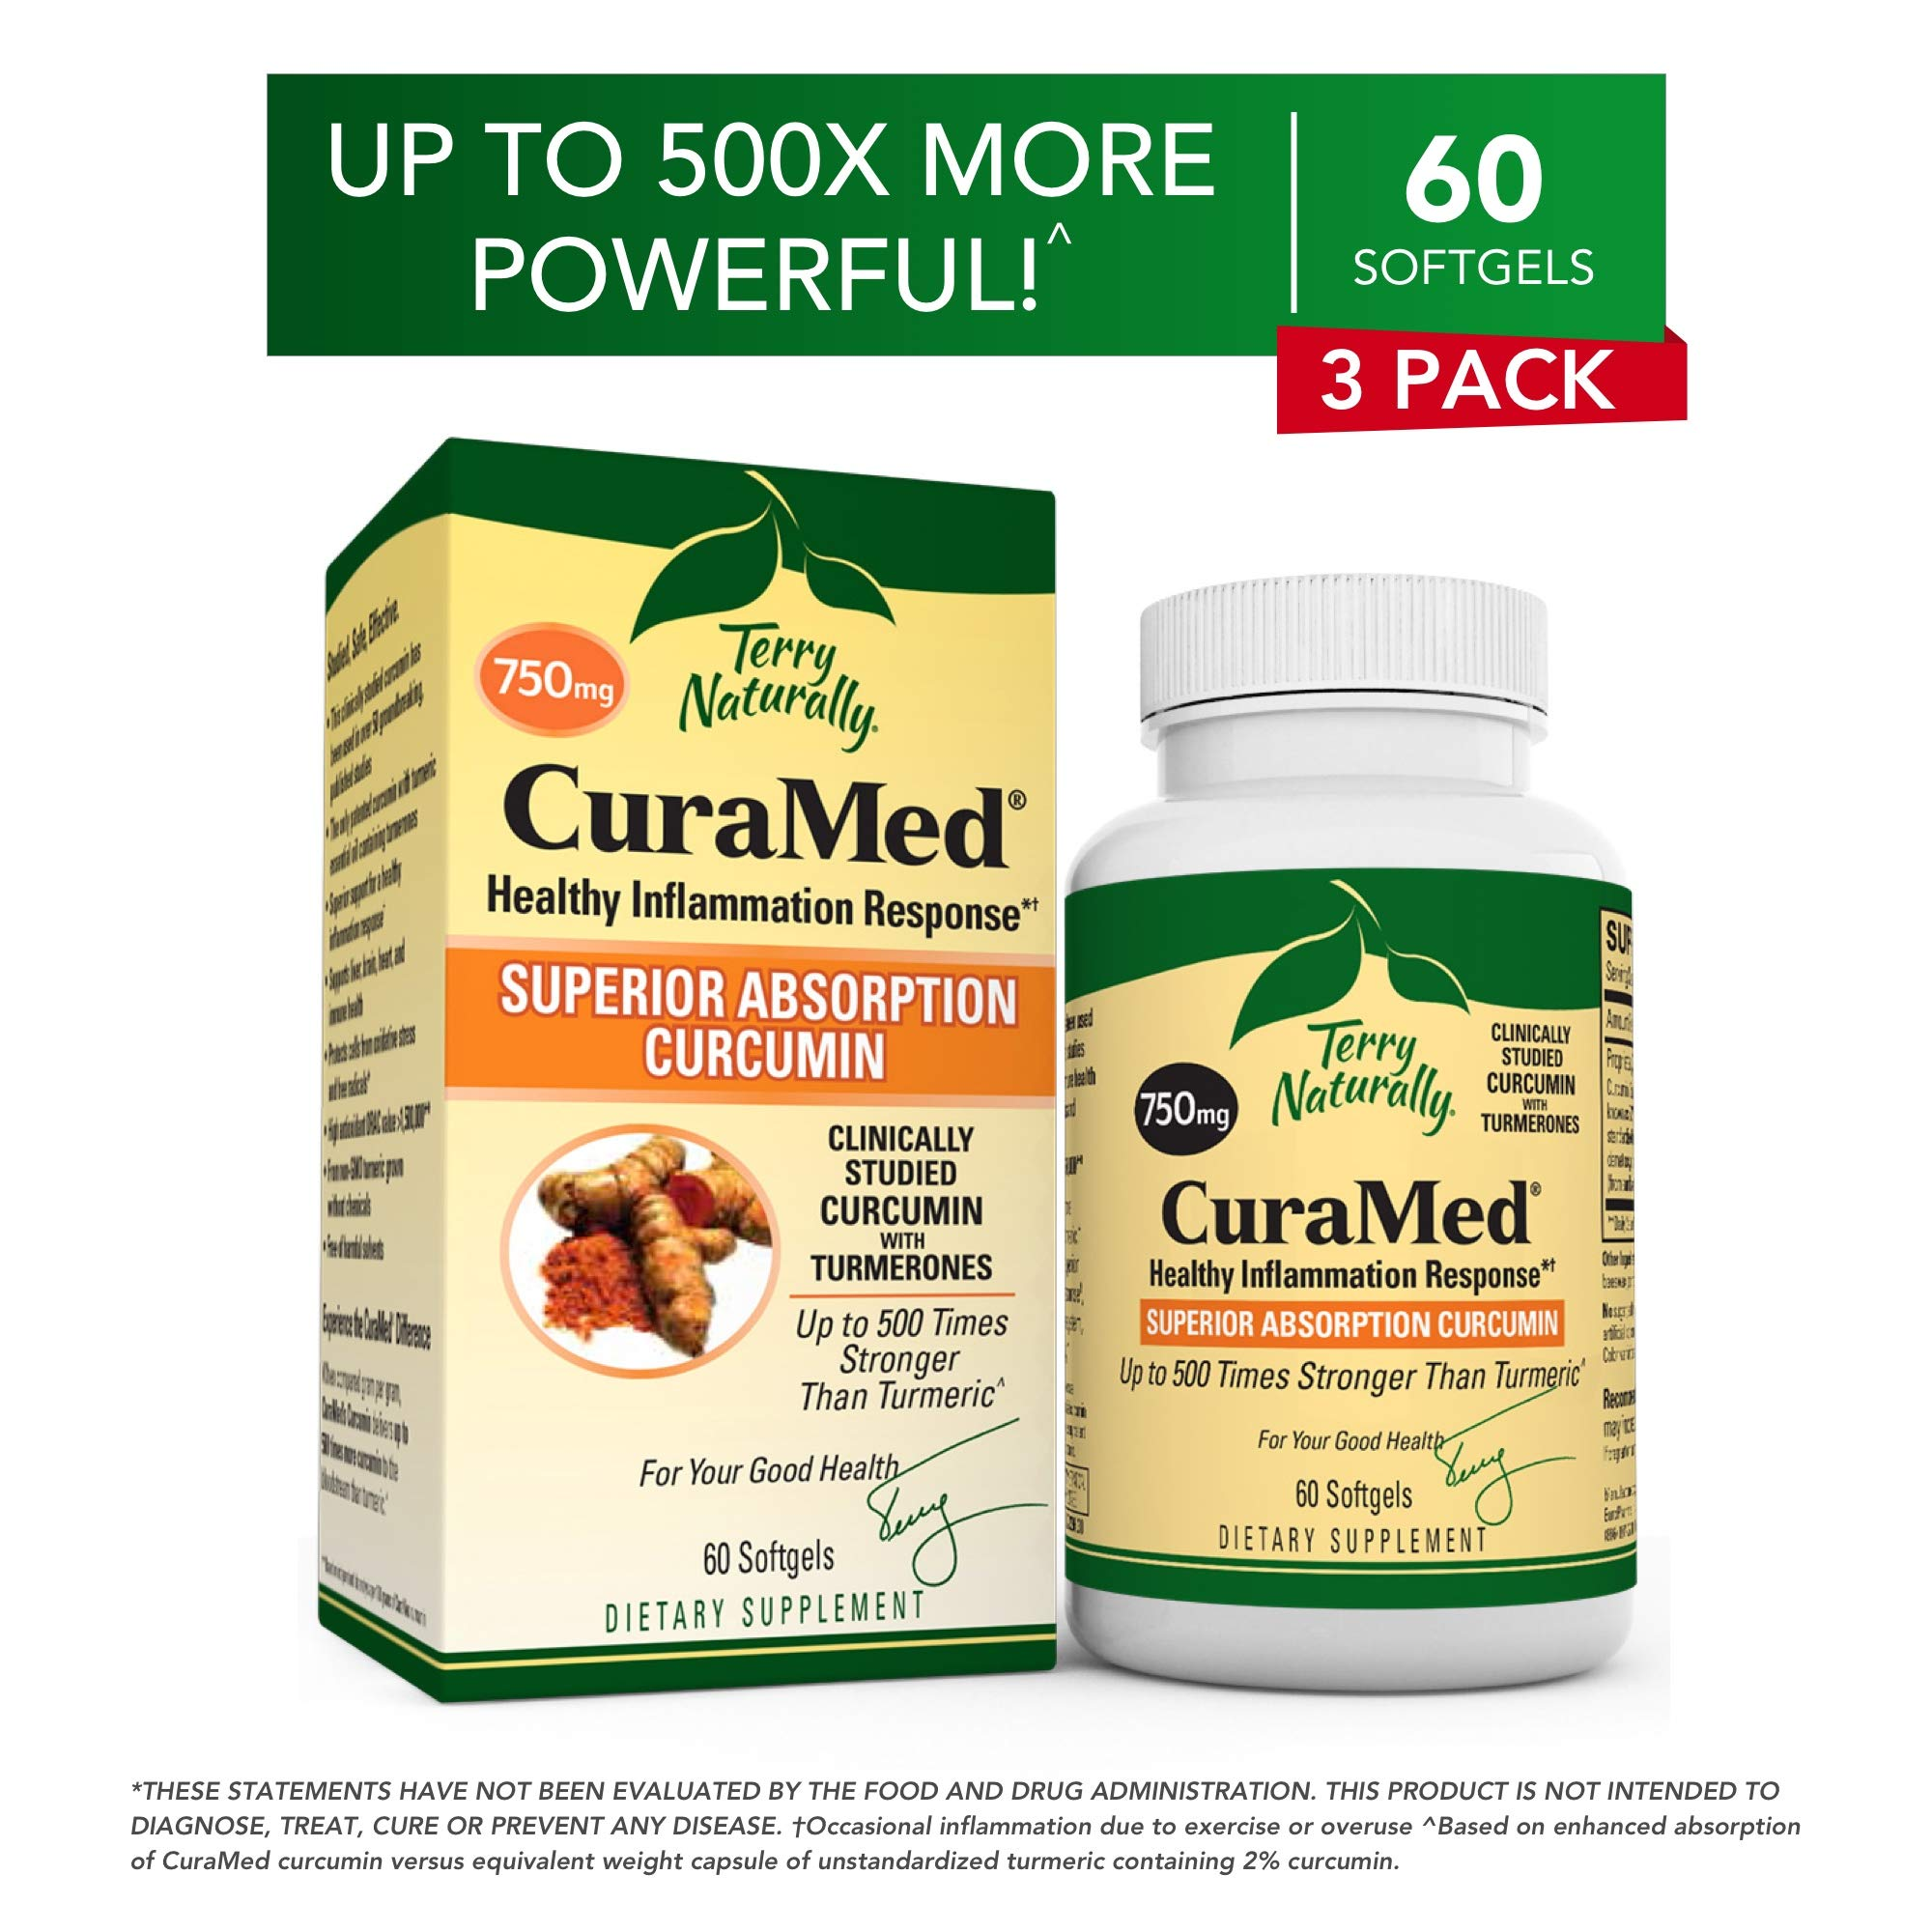 Terry Naturally CuraMed 750 mg (3 Pack) - 60 Softgels - Superior Absorption BCM-95 Curcumin Supplement, Promotes Healthy Inflammation Response - Non-GMO, Gluten-Free, Halal - 180 Total Servings